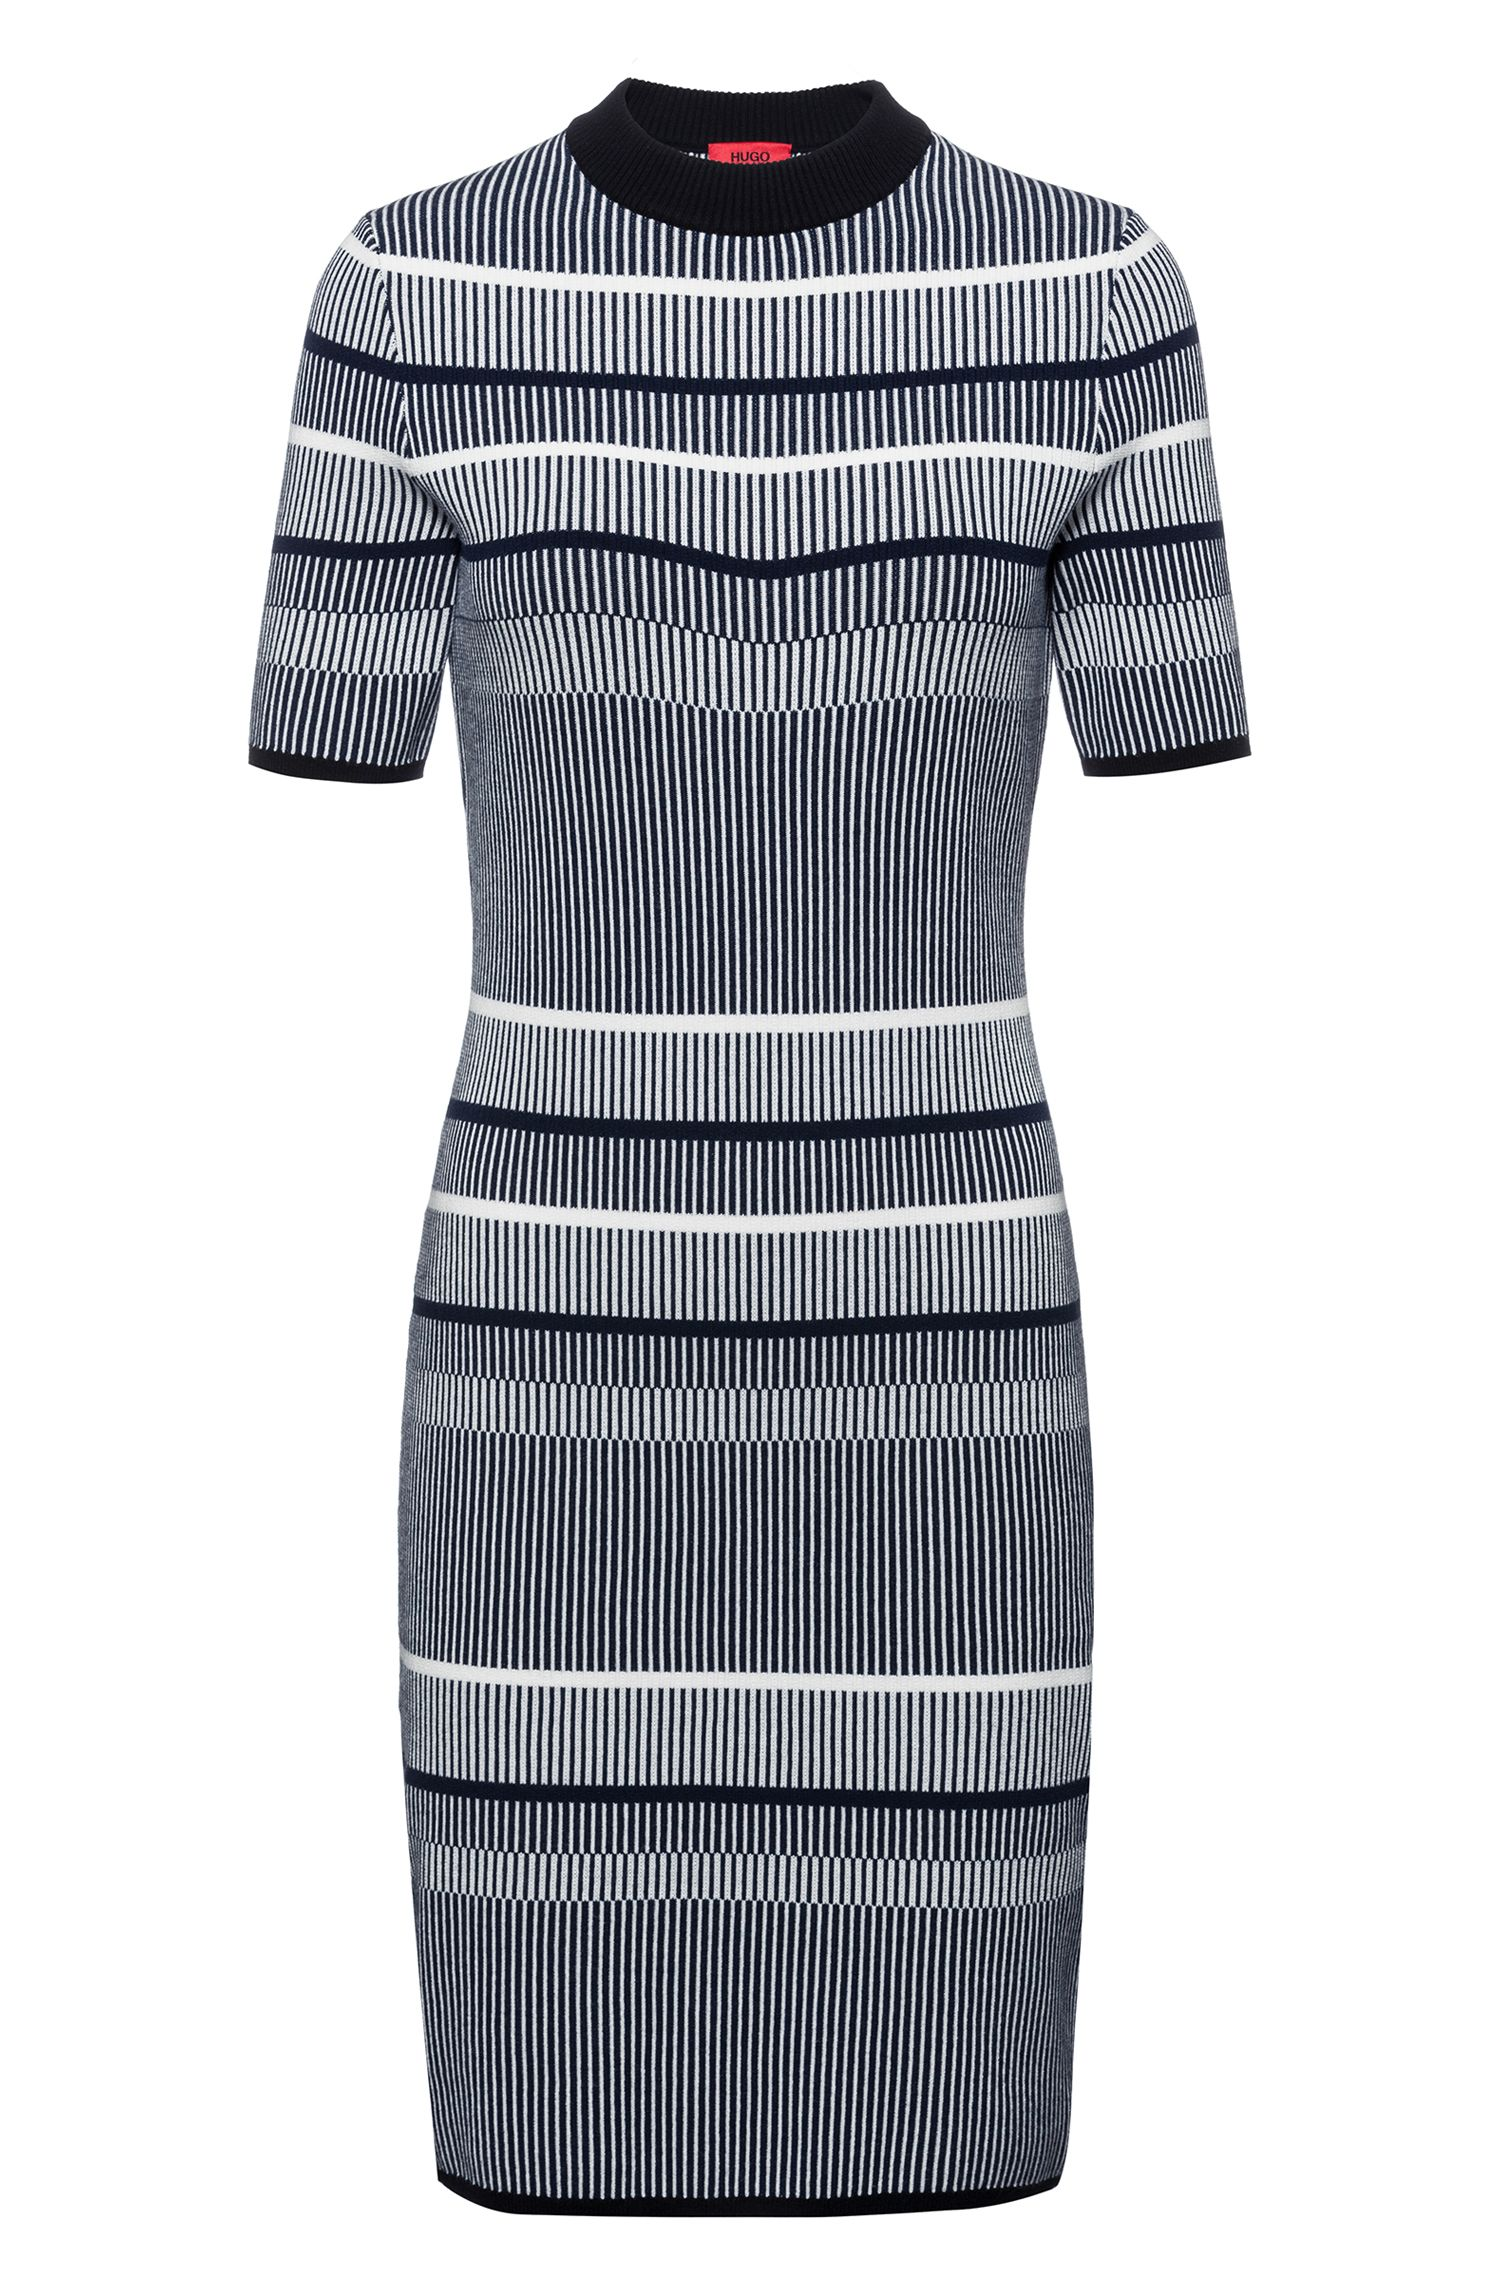 Slim-fit knitted dress in striped super-stretch fabric, Patterned